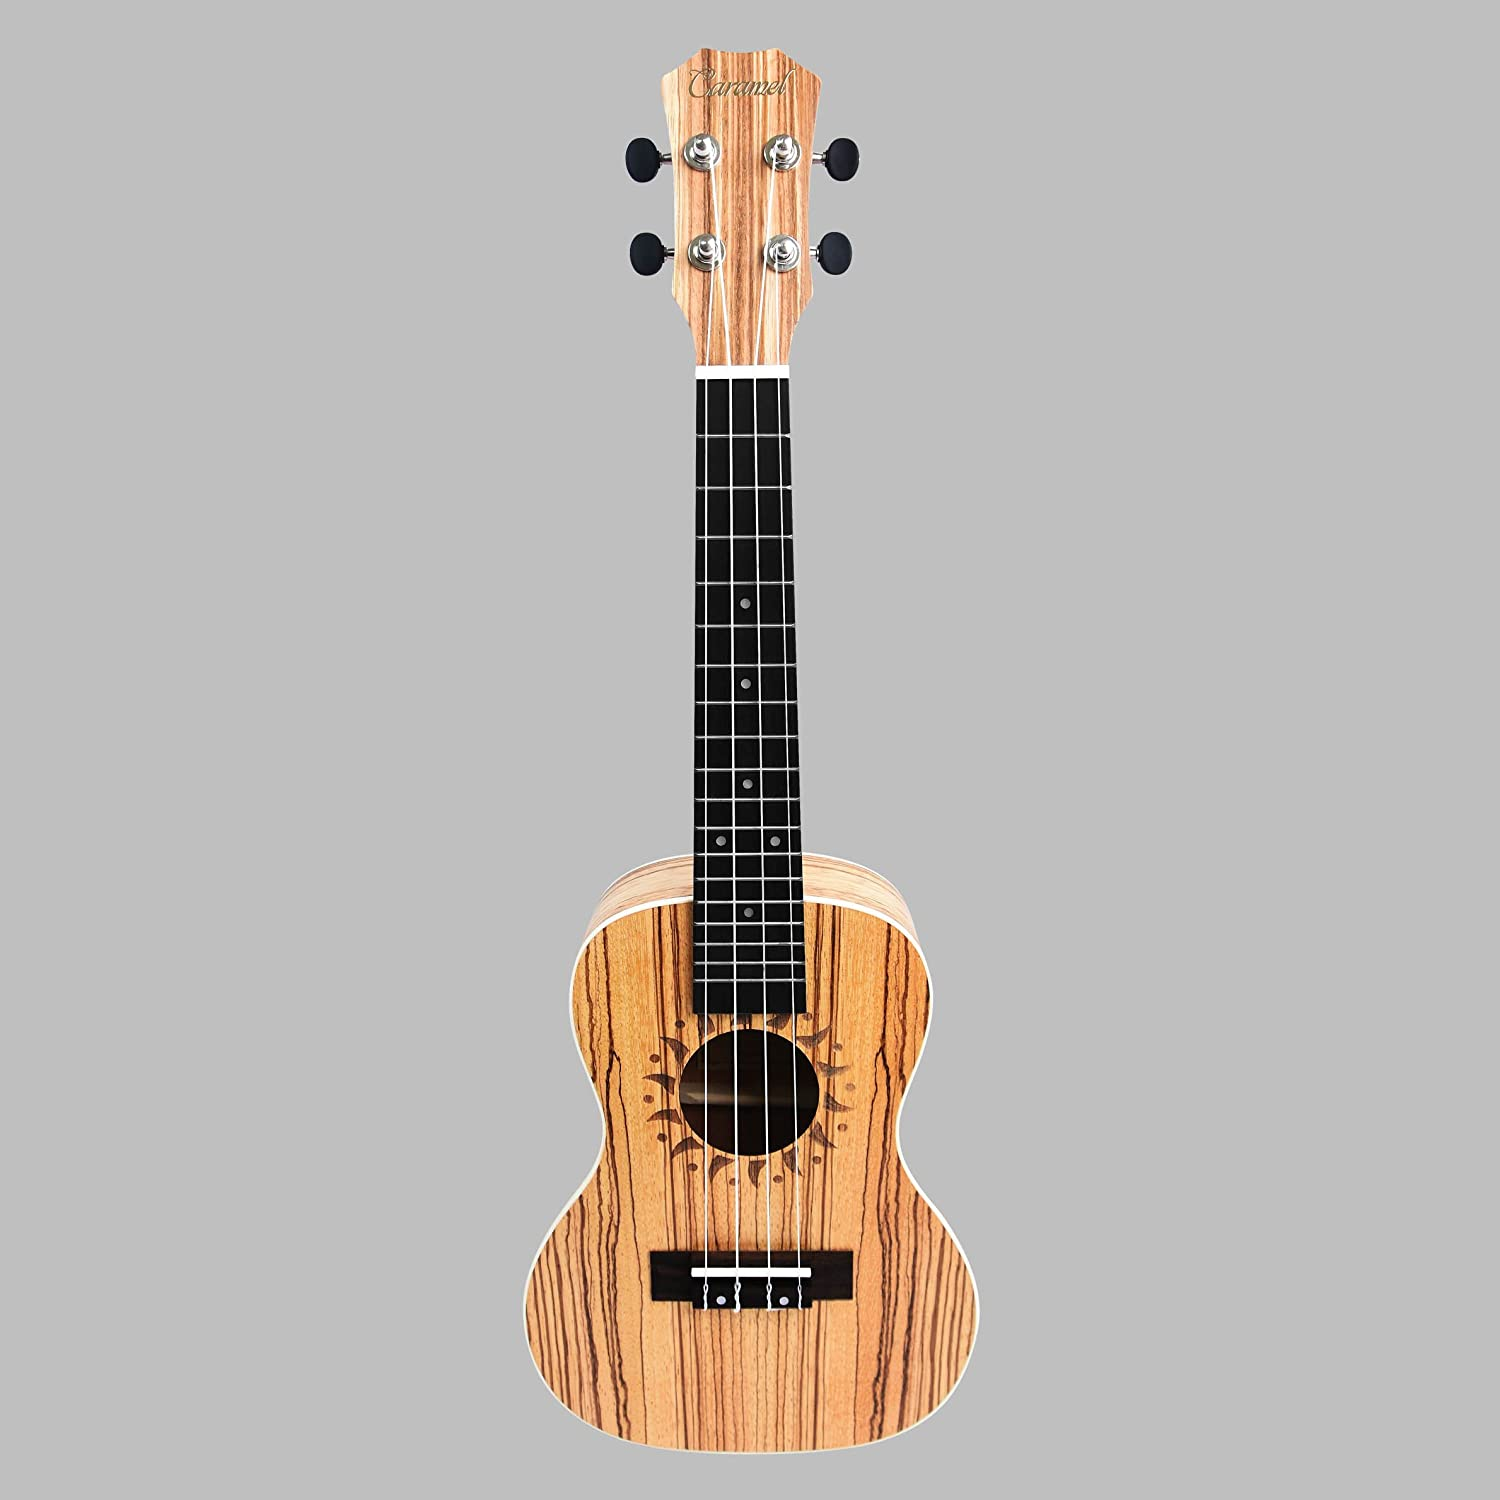 Caramel CT102A Zebra Wood Tenor